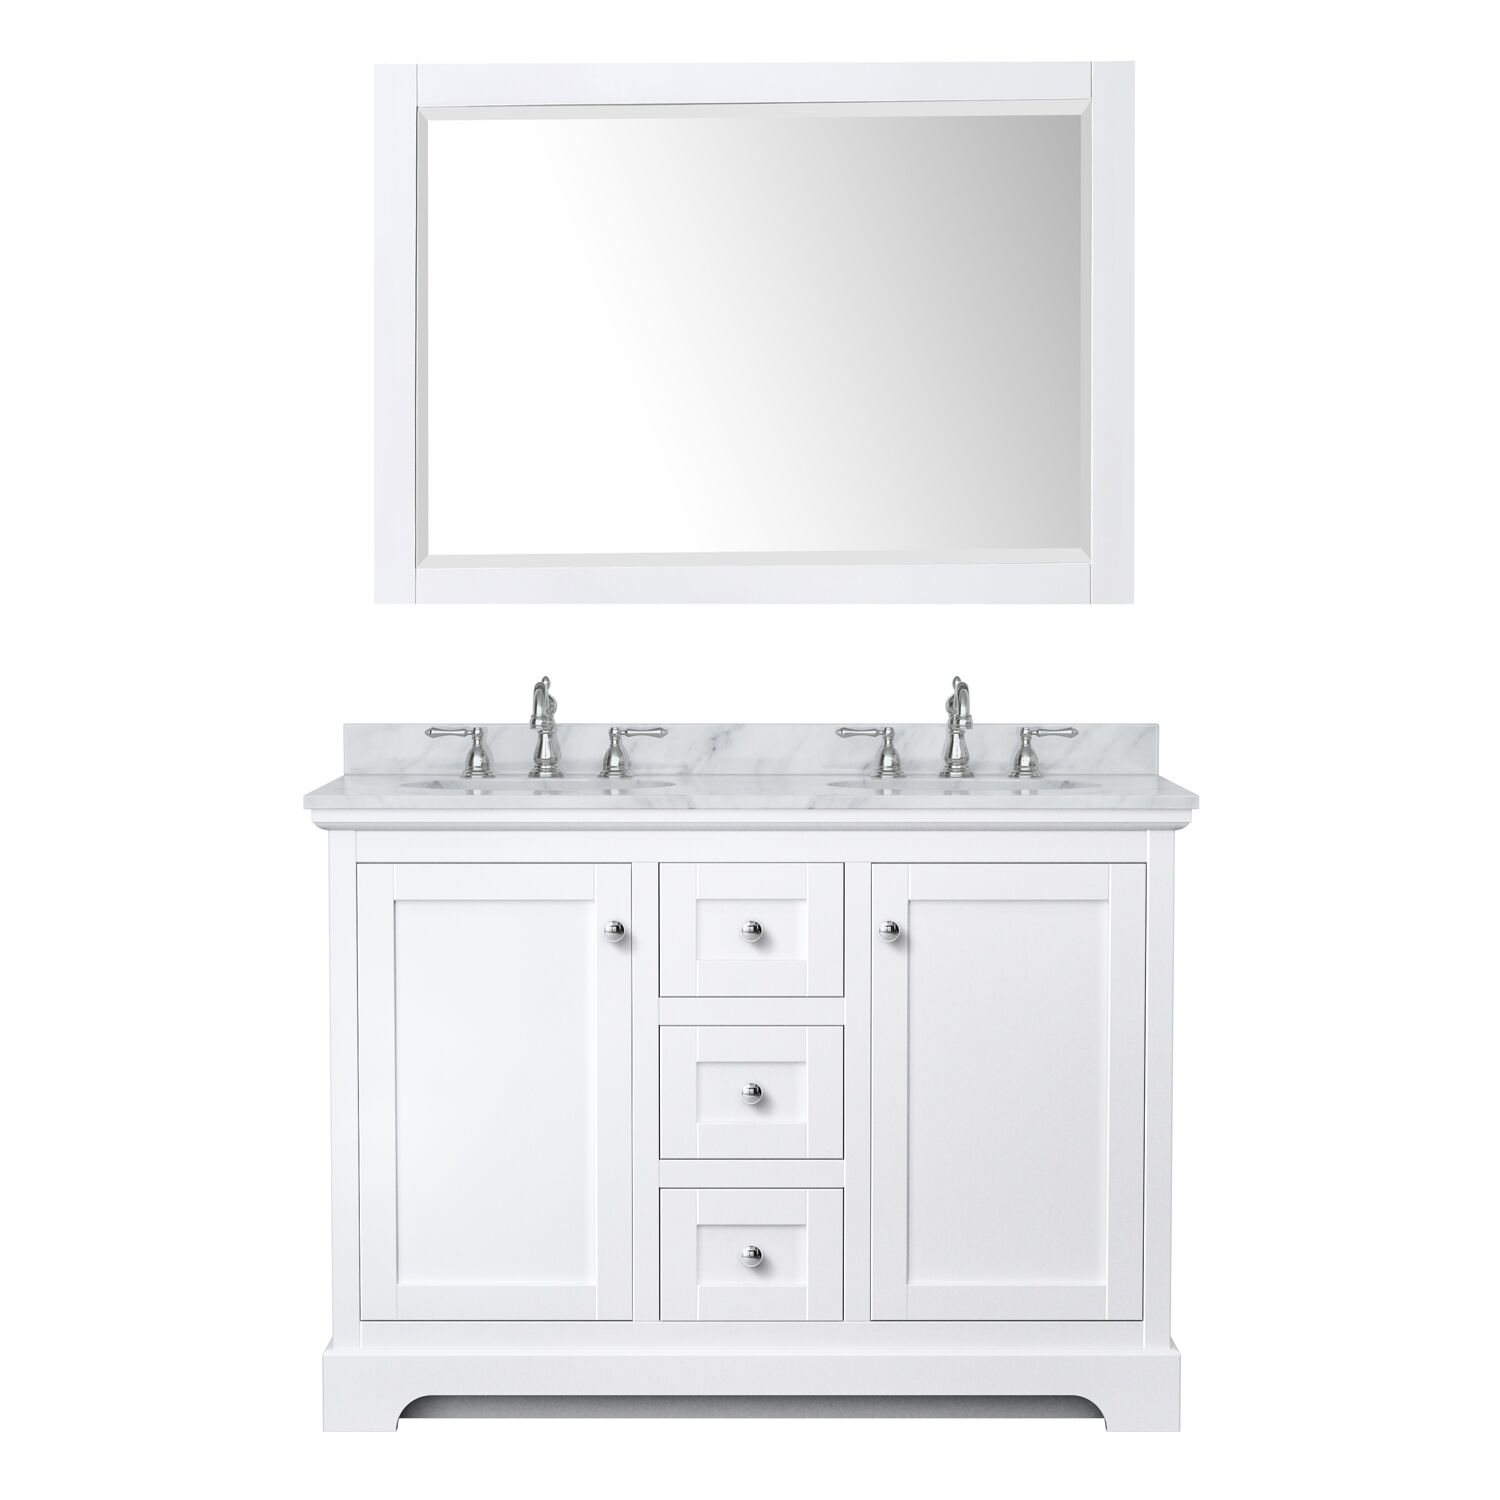 "48"" Double Bathroom Vanity in White with Countertop, Sinks and Mirror Options"